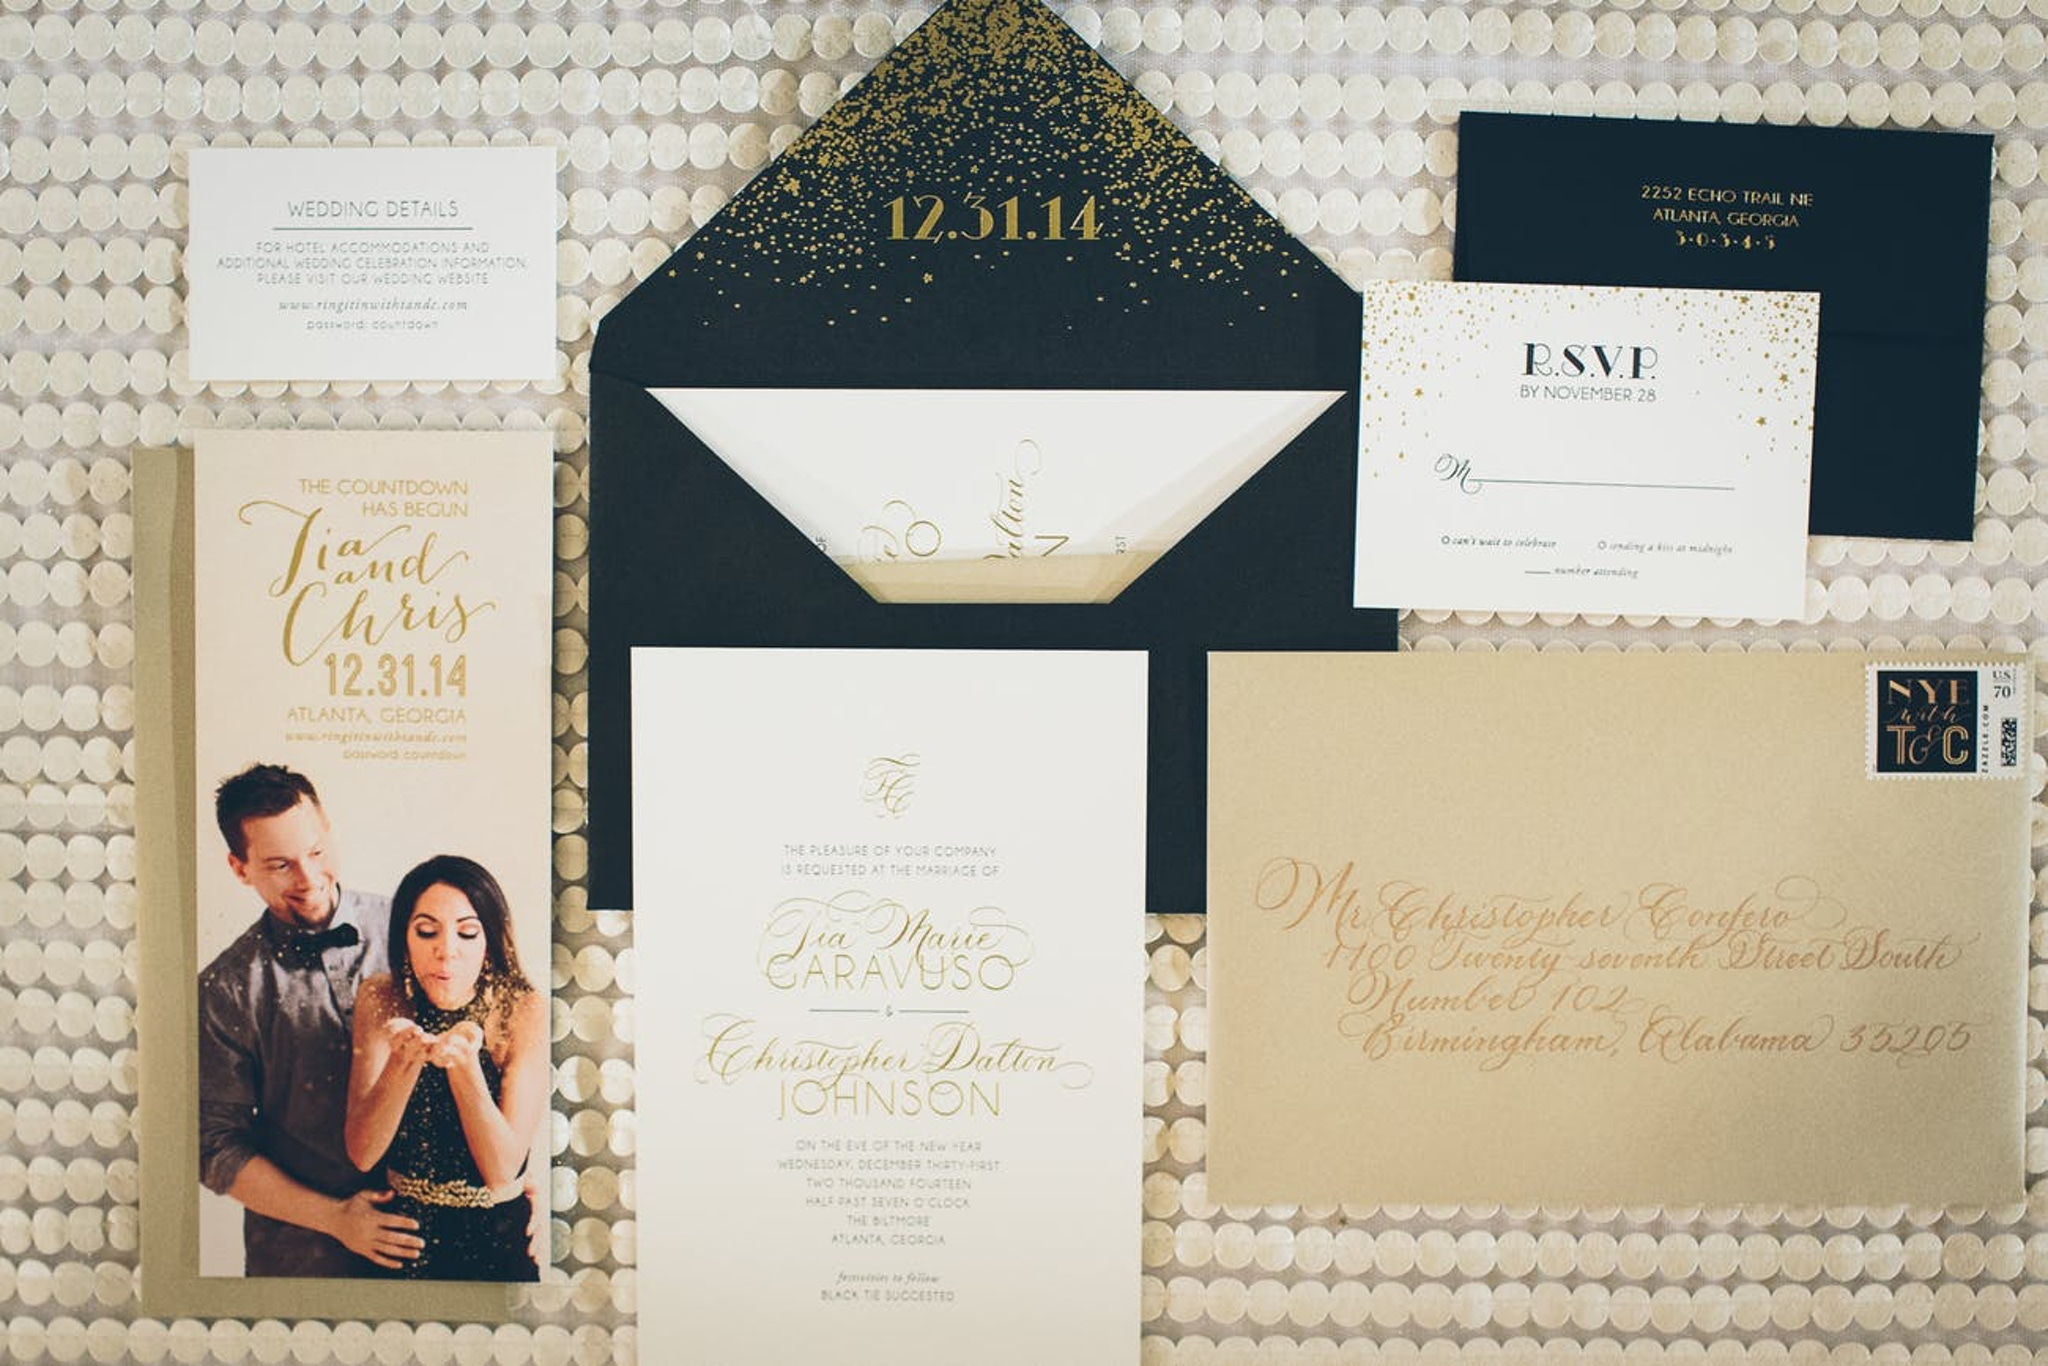 former Atlanta Braves player Chistopher Johnson and his bride Tia Garavuso's new year's eve wedding invitation suite